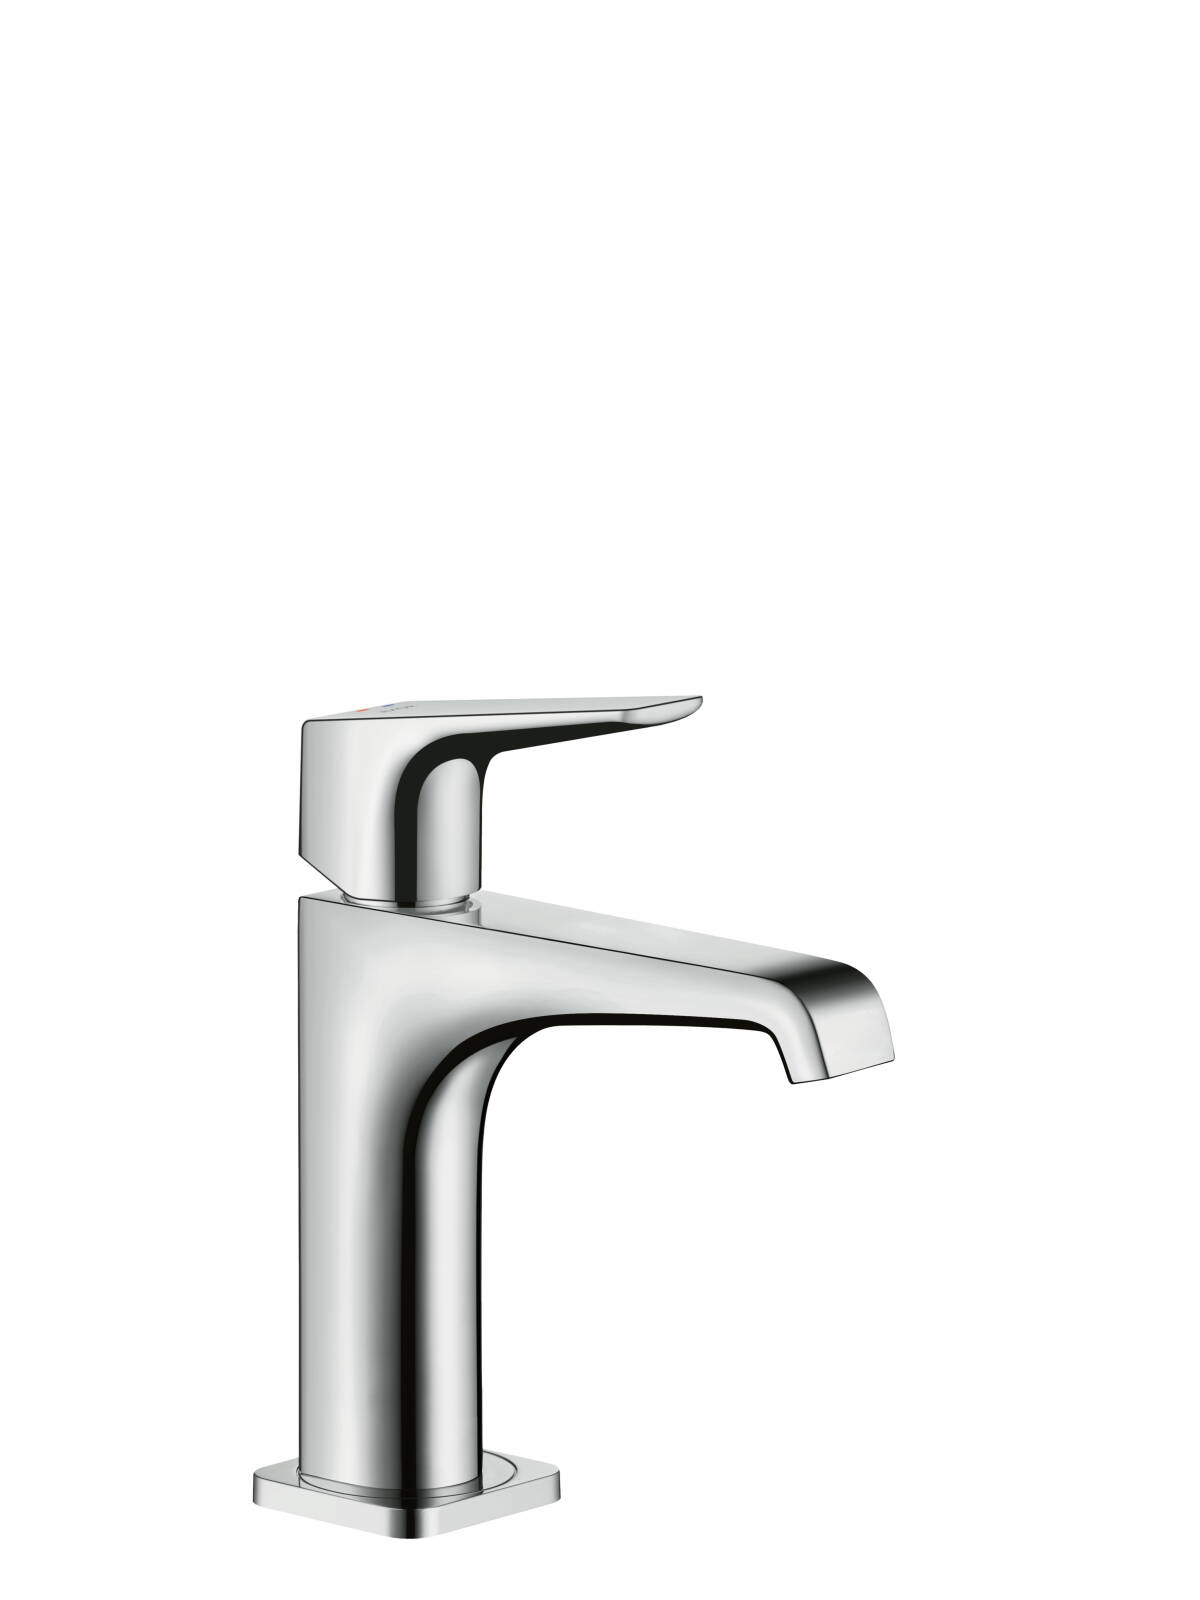 Single lever basin mixer 130 with lever handle and waste set, Chrome, 36111000